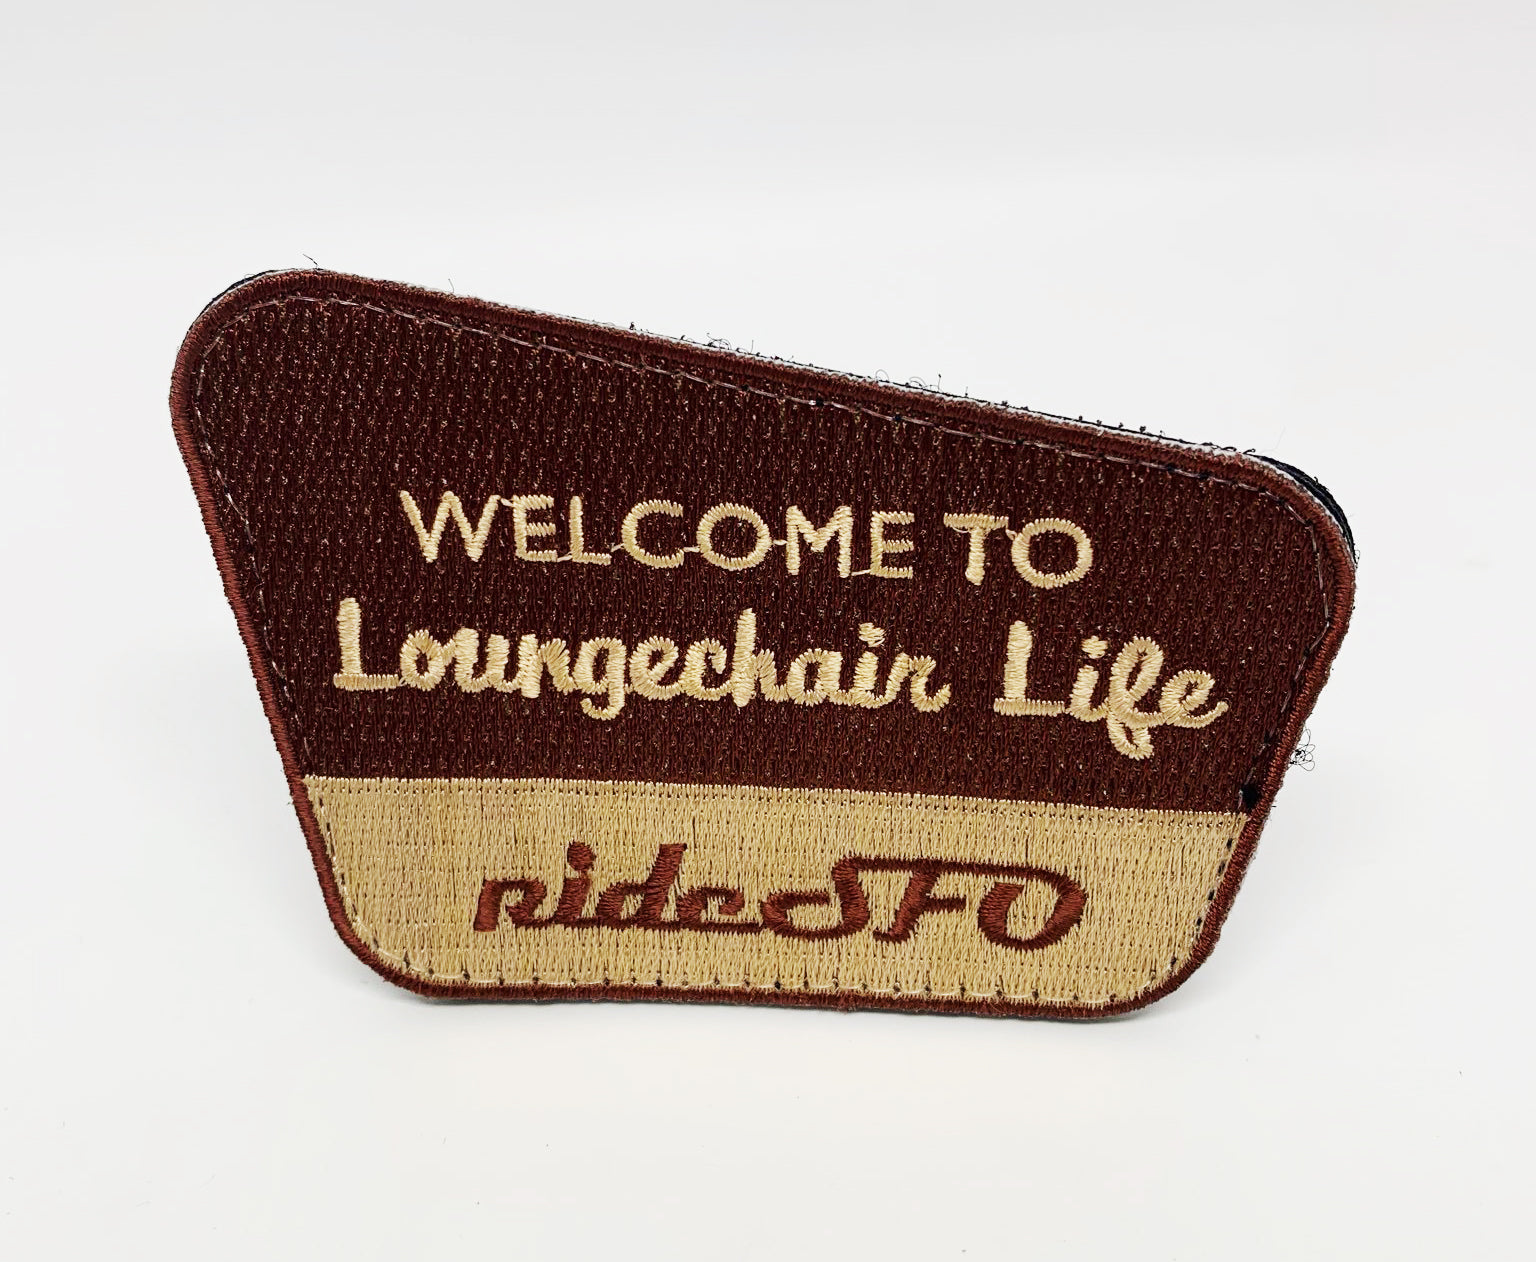 rideSFO Loungerchair Life Patch